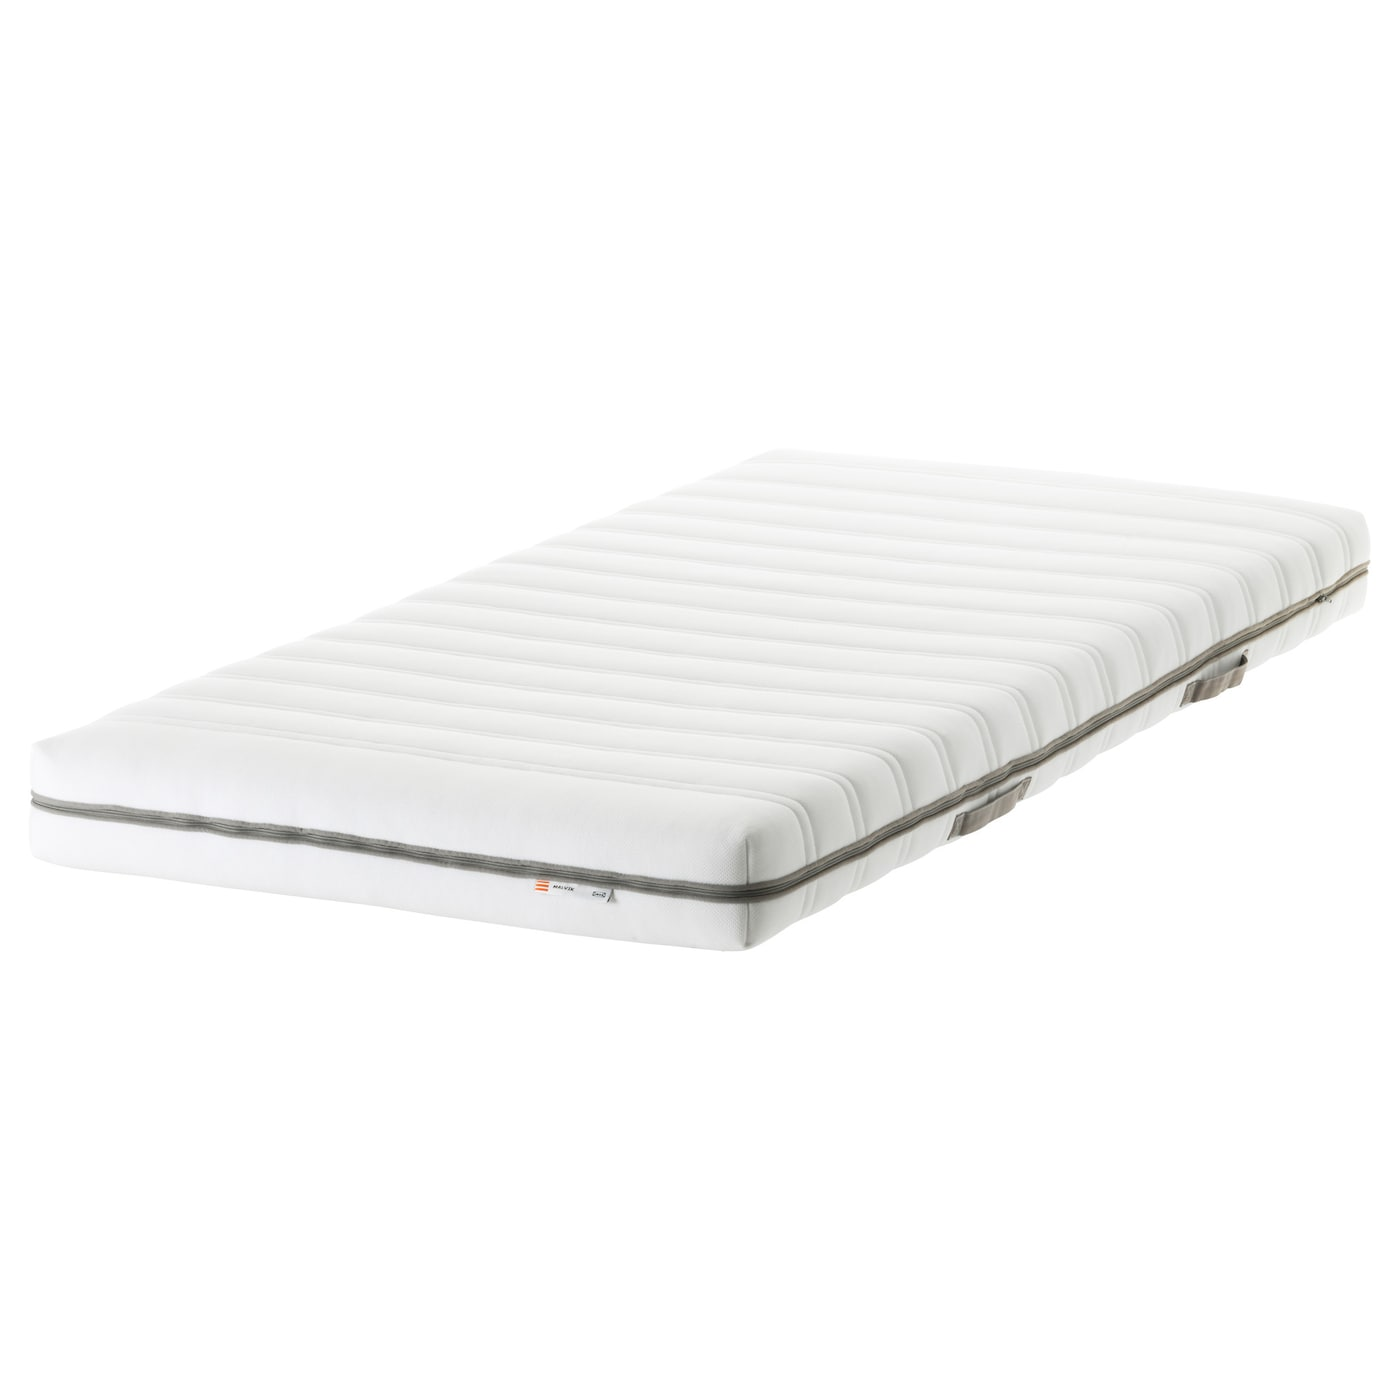 malvik matelas en mousse ferme blanc 80x200 cm ikea. Black Bedroom Furniture Sets. Home Design Ideas